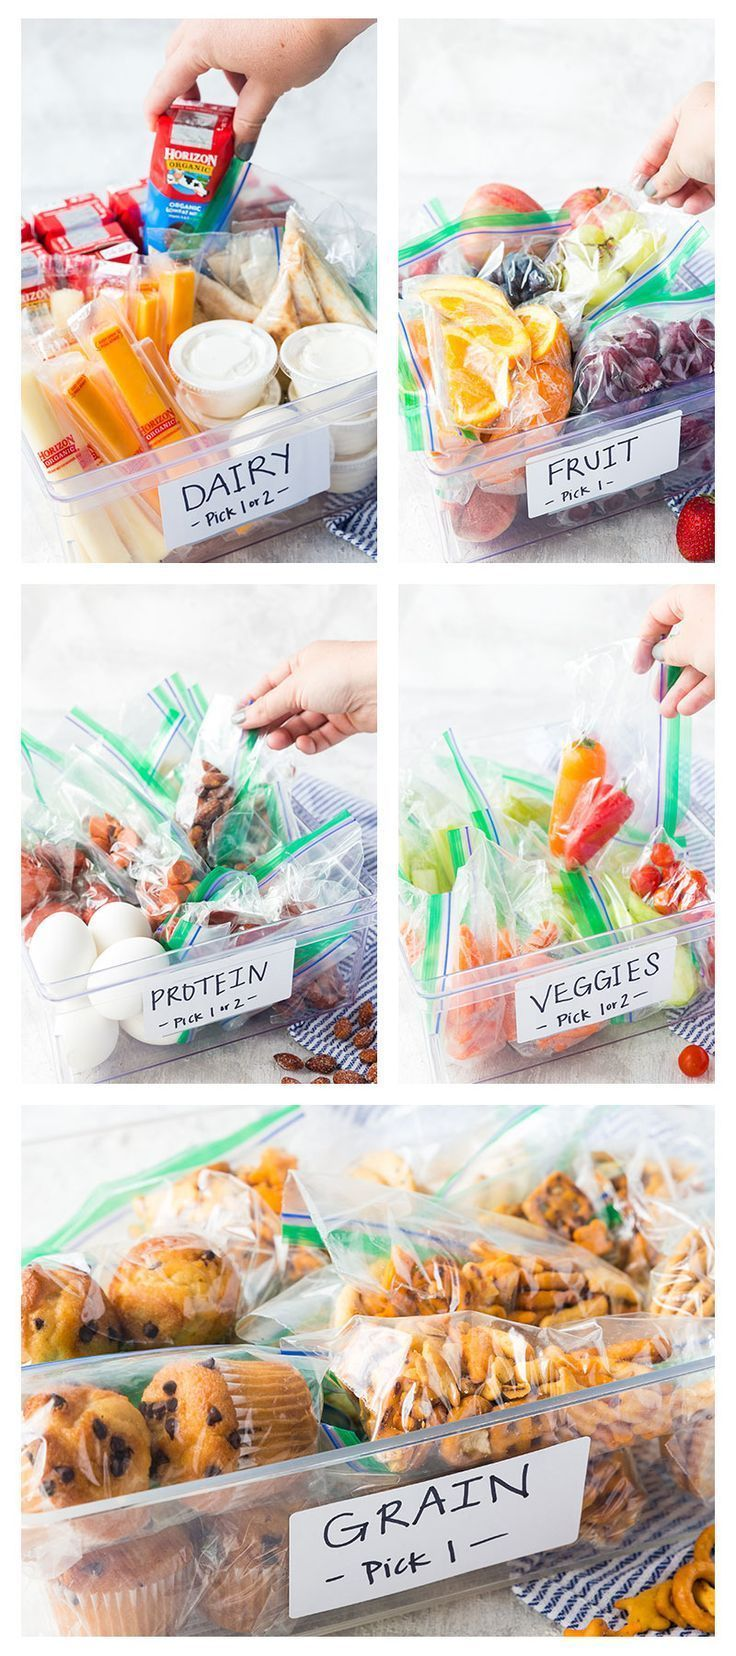 5 bins full of organic foods for kids to build their own lunches with, making ba... - -